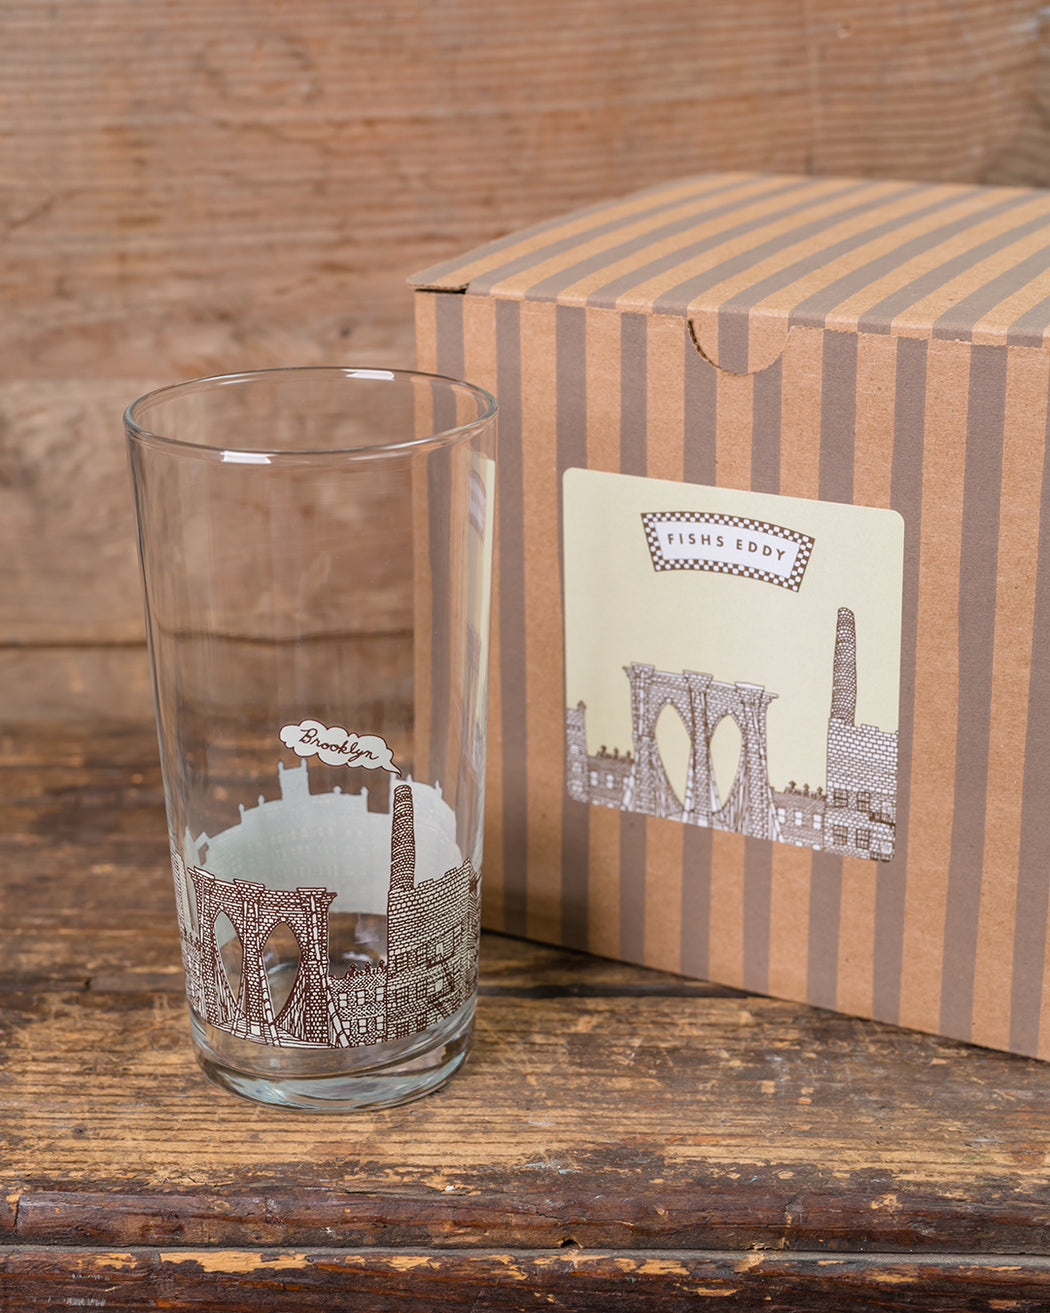 Brooklyn Glasses Gift Box - Set of 4 - Fishs Eddy